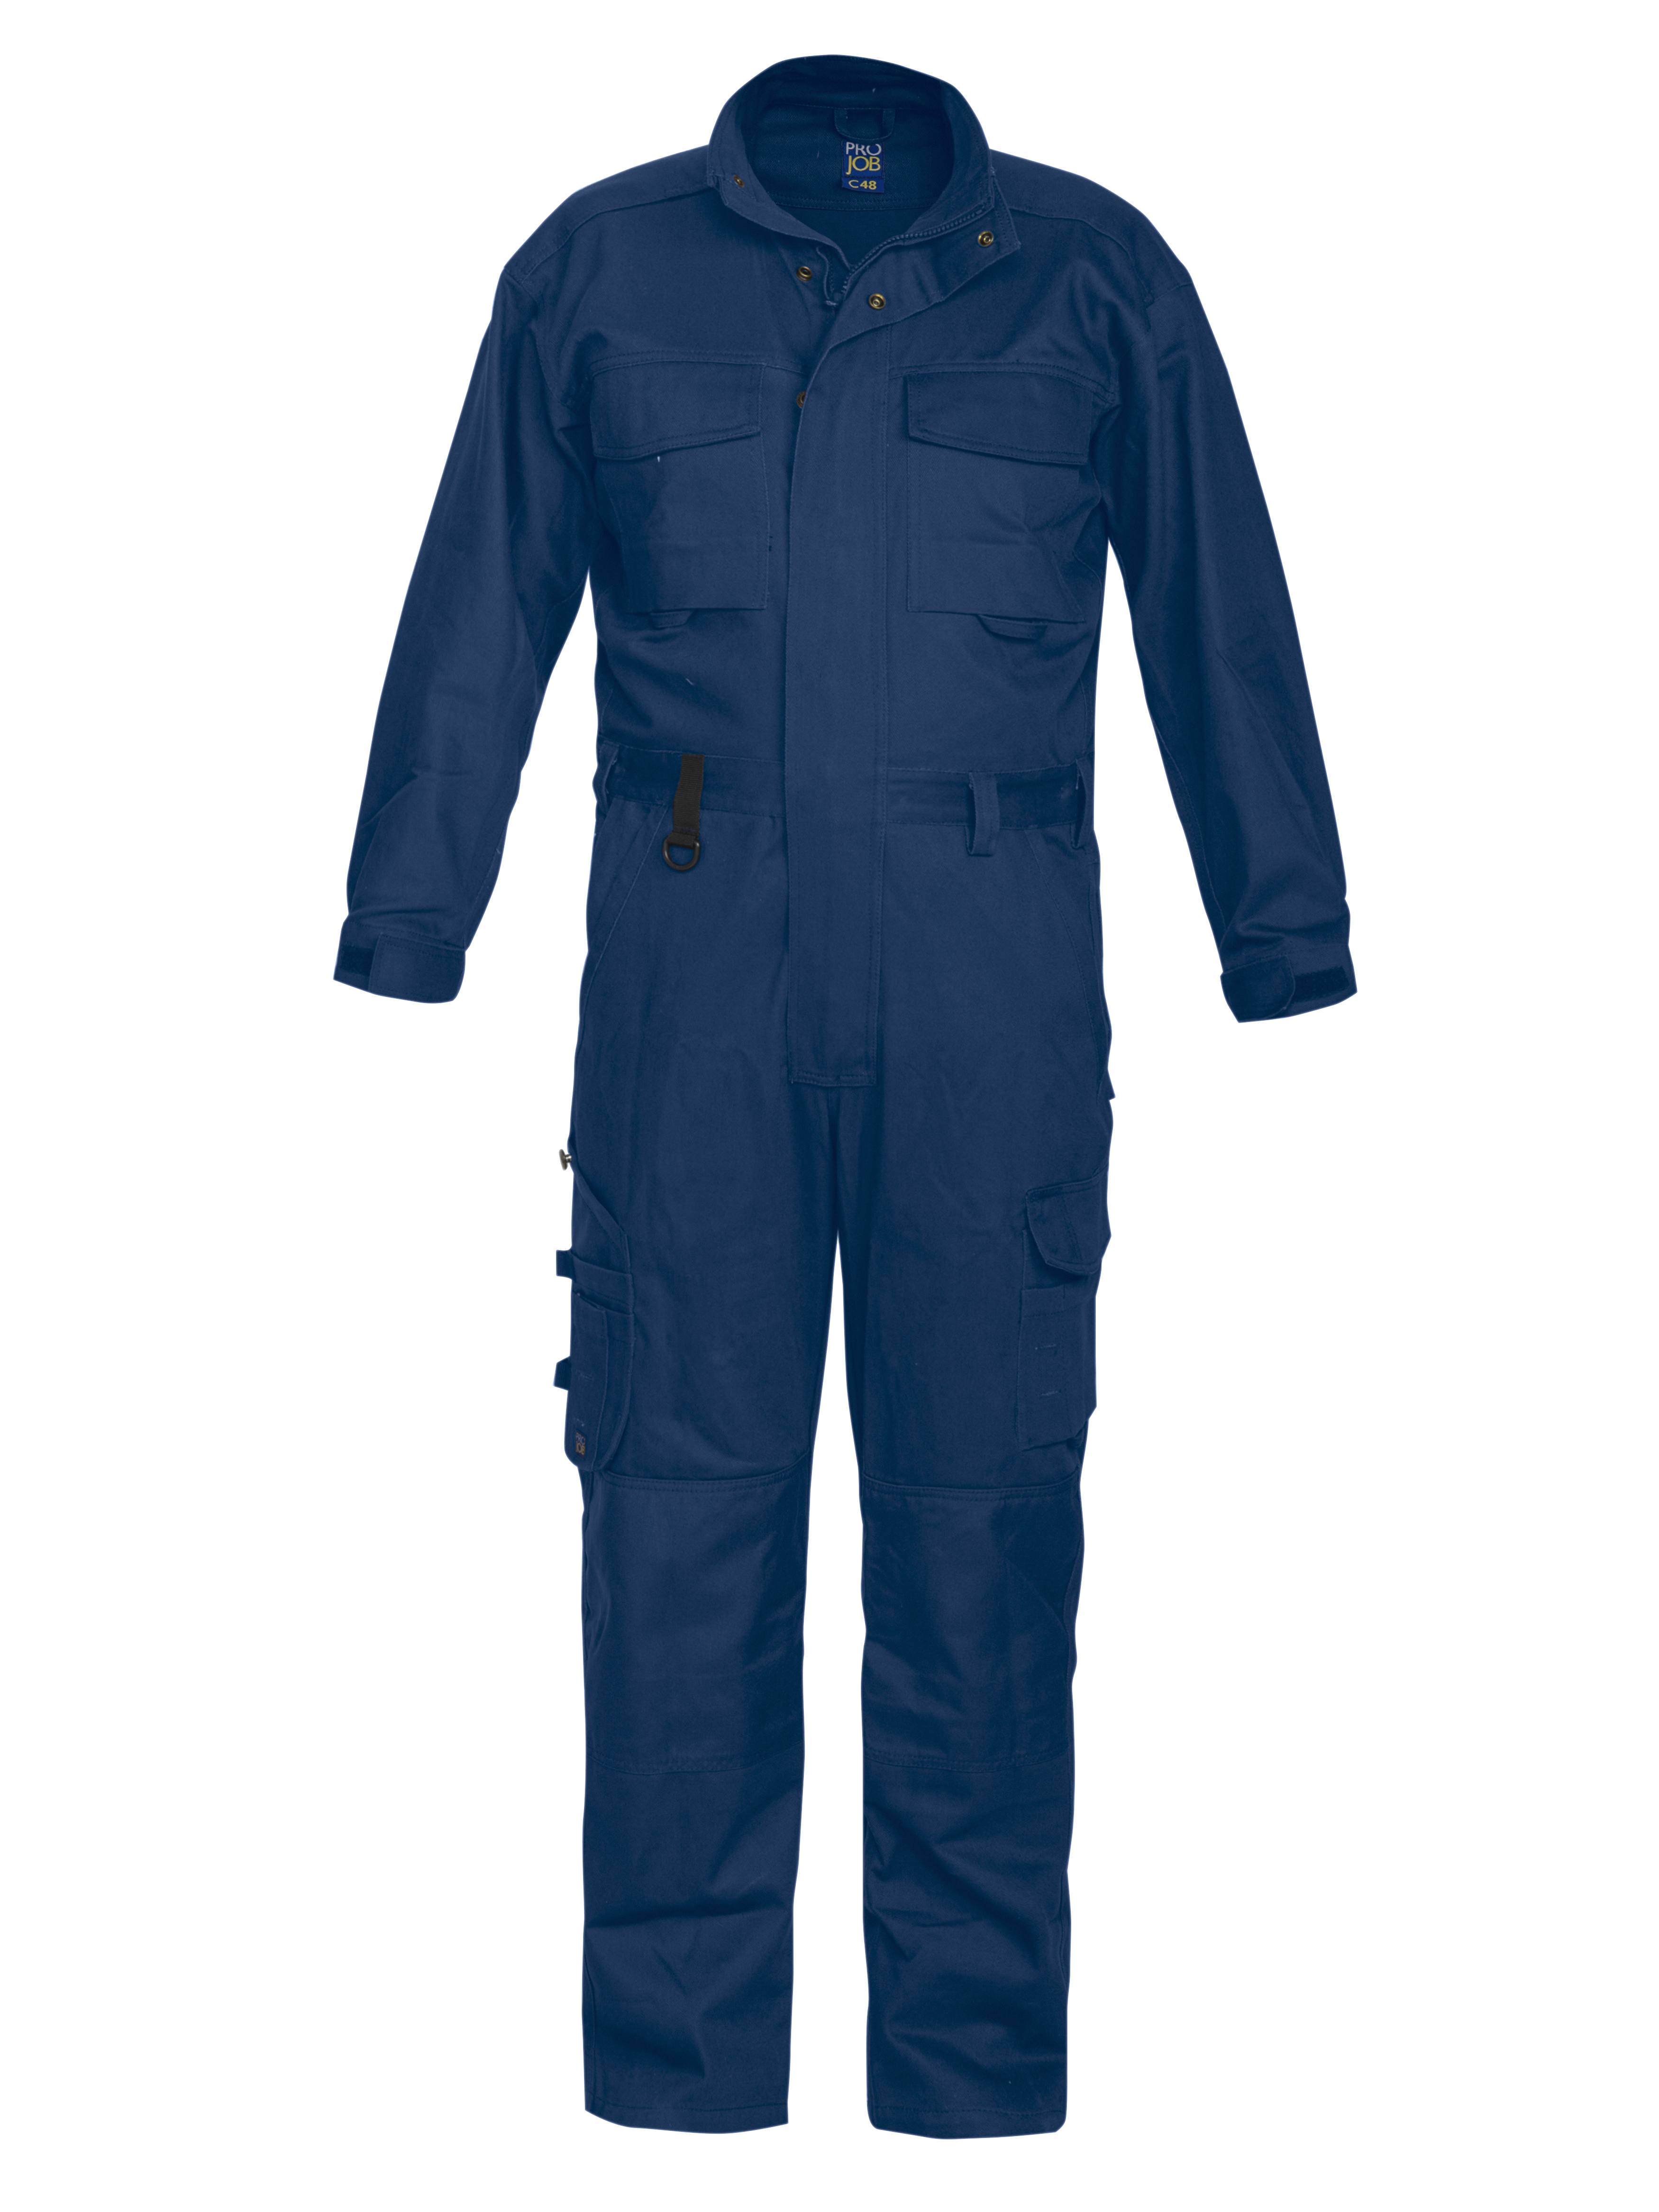 PROJOB 5607 COVERALL  - Mannen